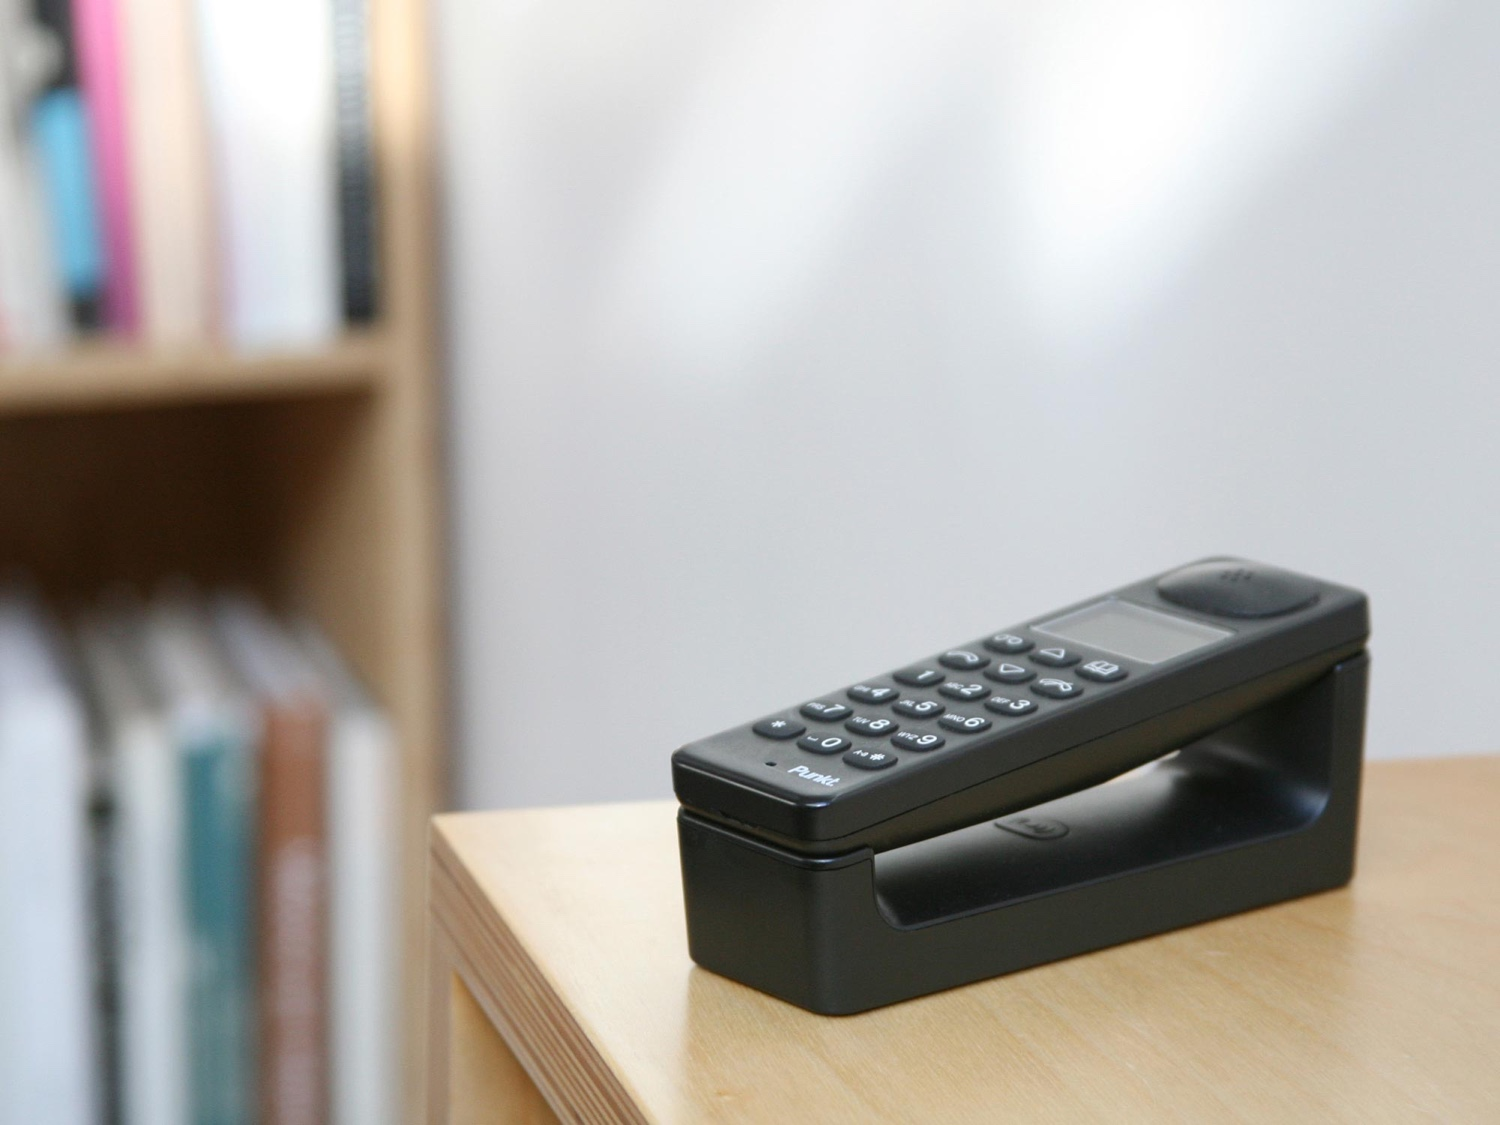 DP-01 Dect Phone (2010). A cordless phone designed for Punkt.